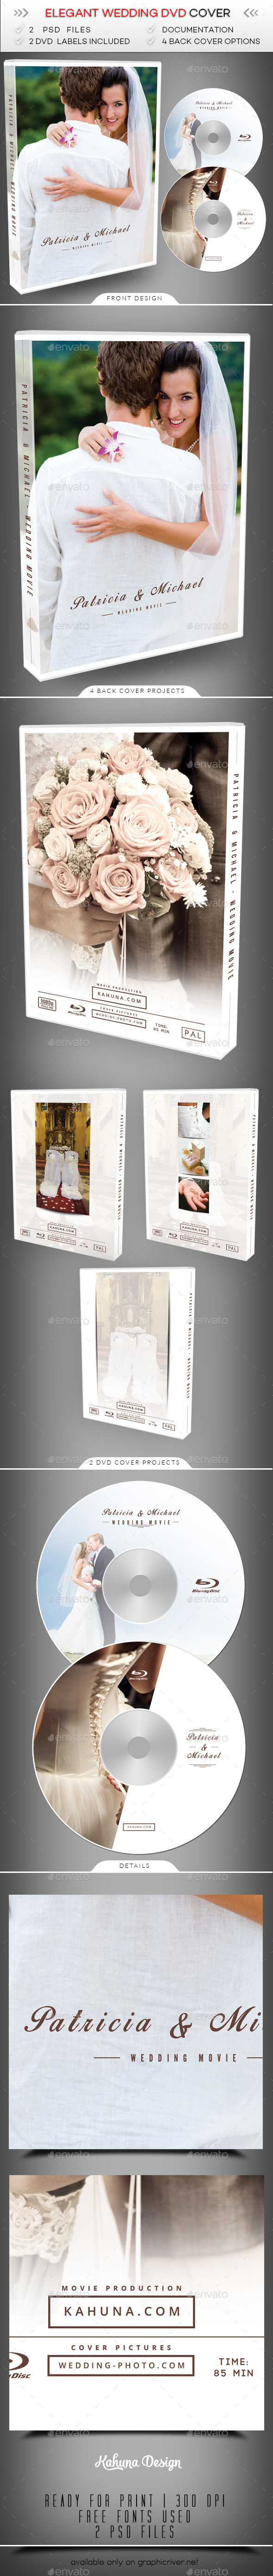 Wedding DVD Cover 3 - CD & DVD Artwork Print Templates